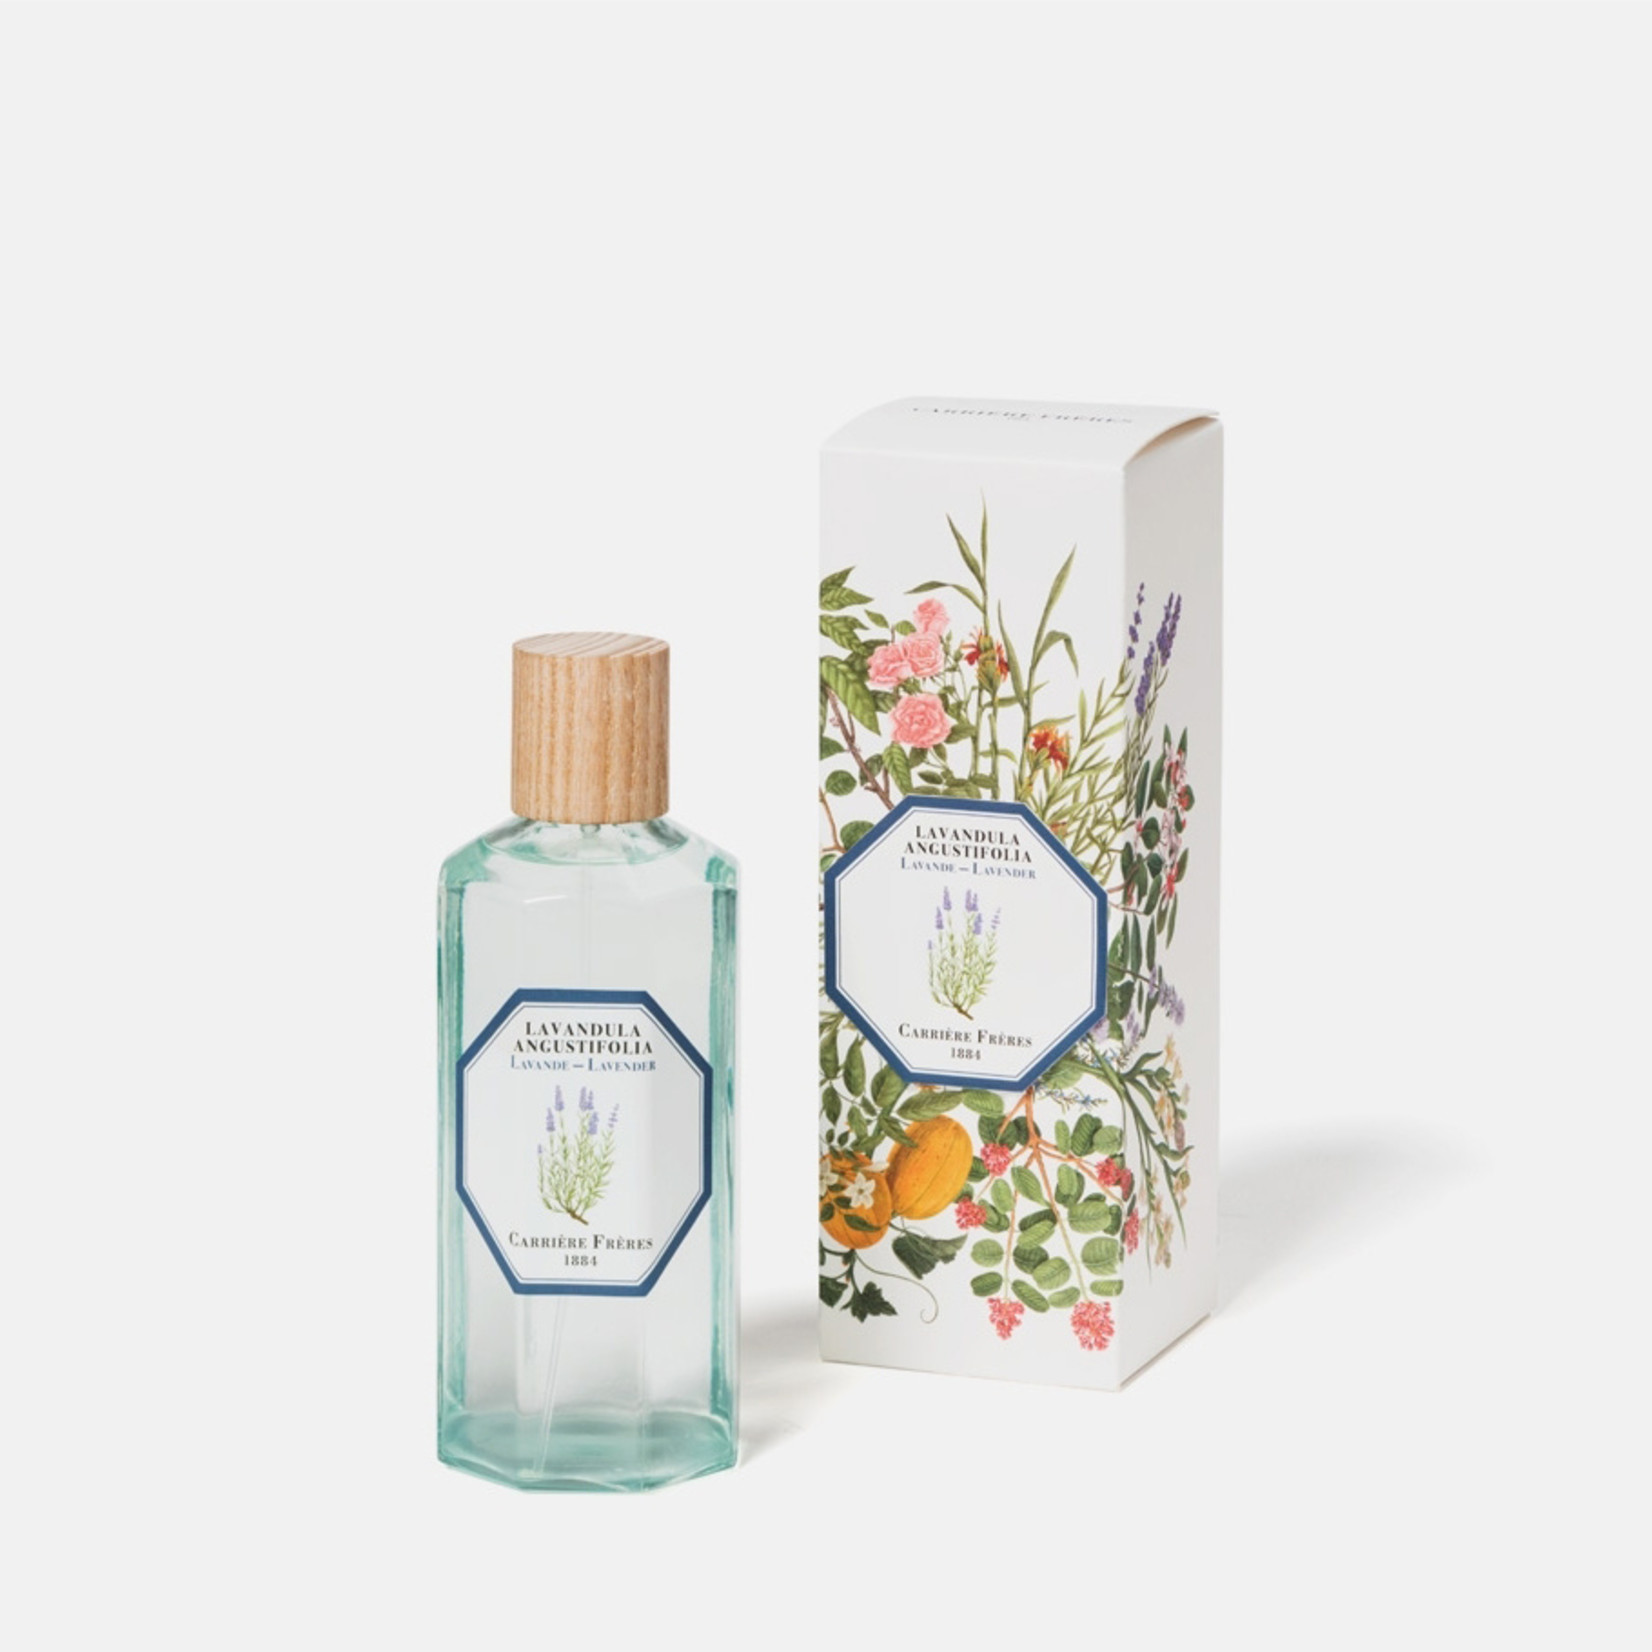 Carriere Freres Room Spray